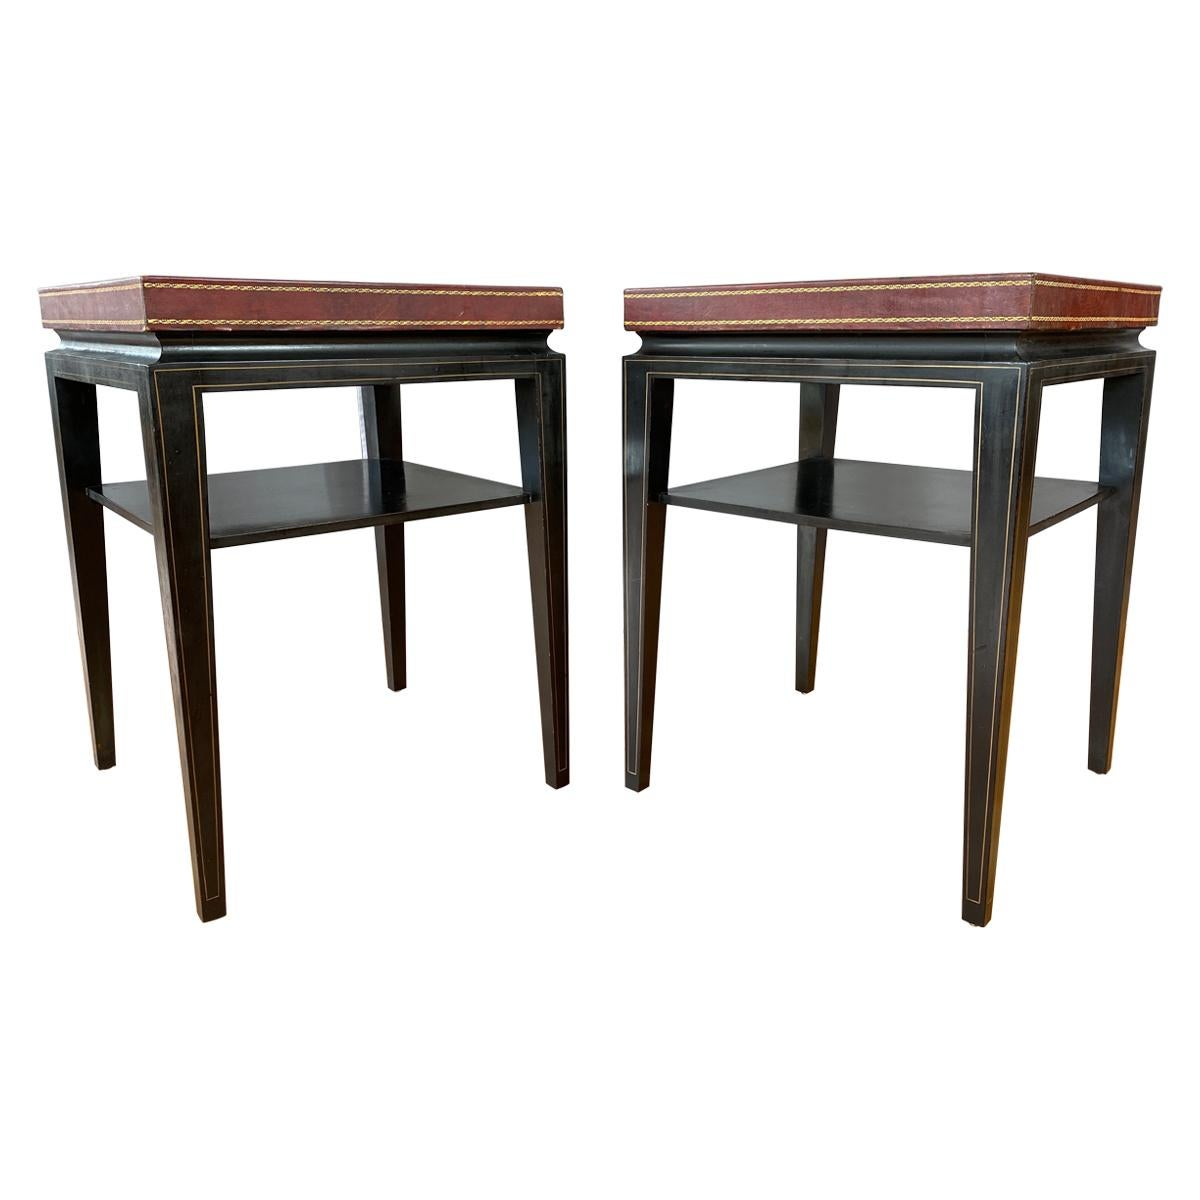 Pair of Tommi Parzinger Leather Top Ebonized Mahogany Occasional Tables, 1950s